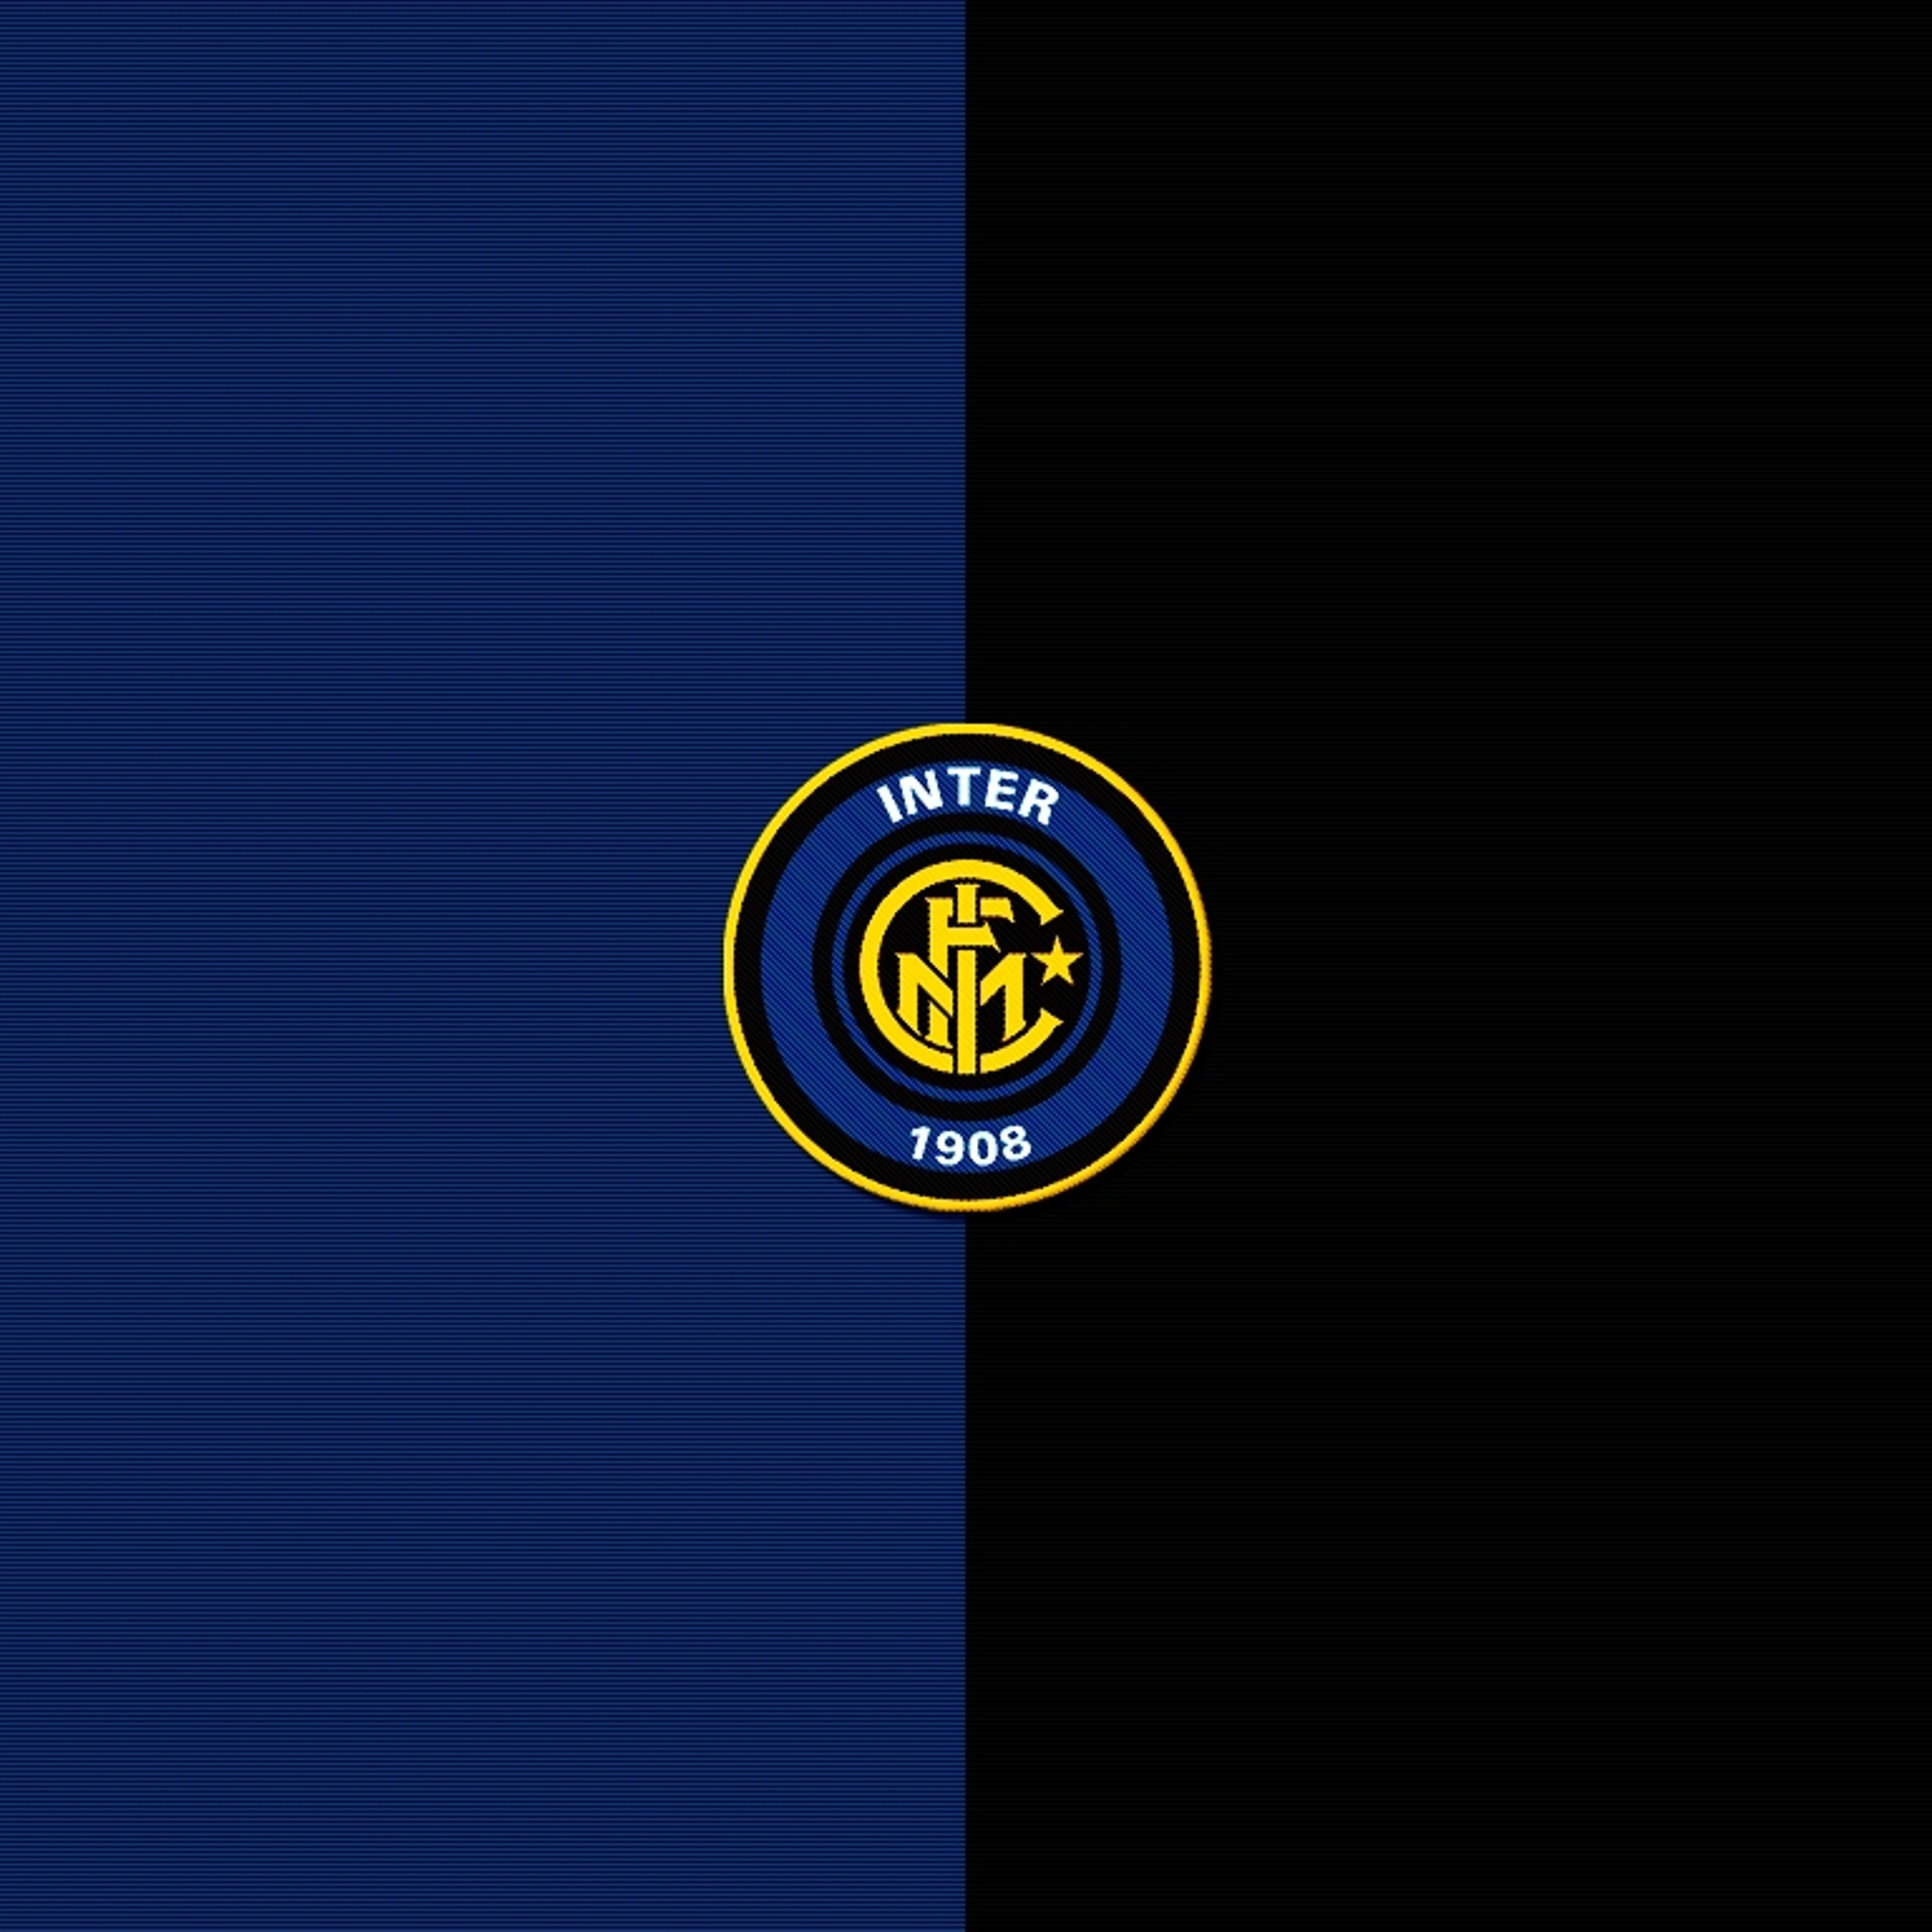 inter milan wallpaper 2012 - photo #25